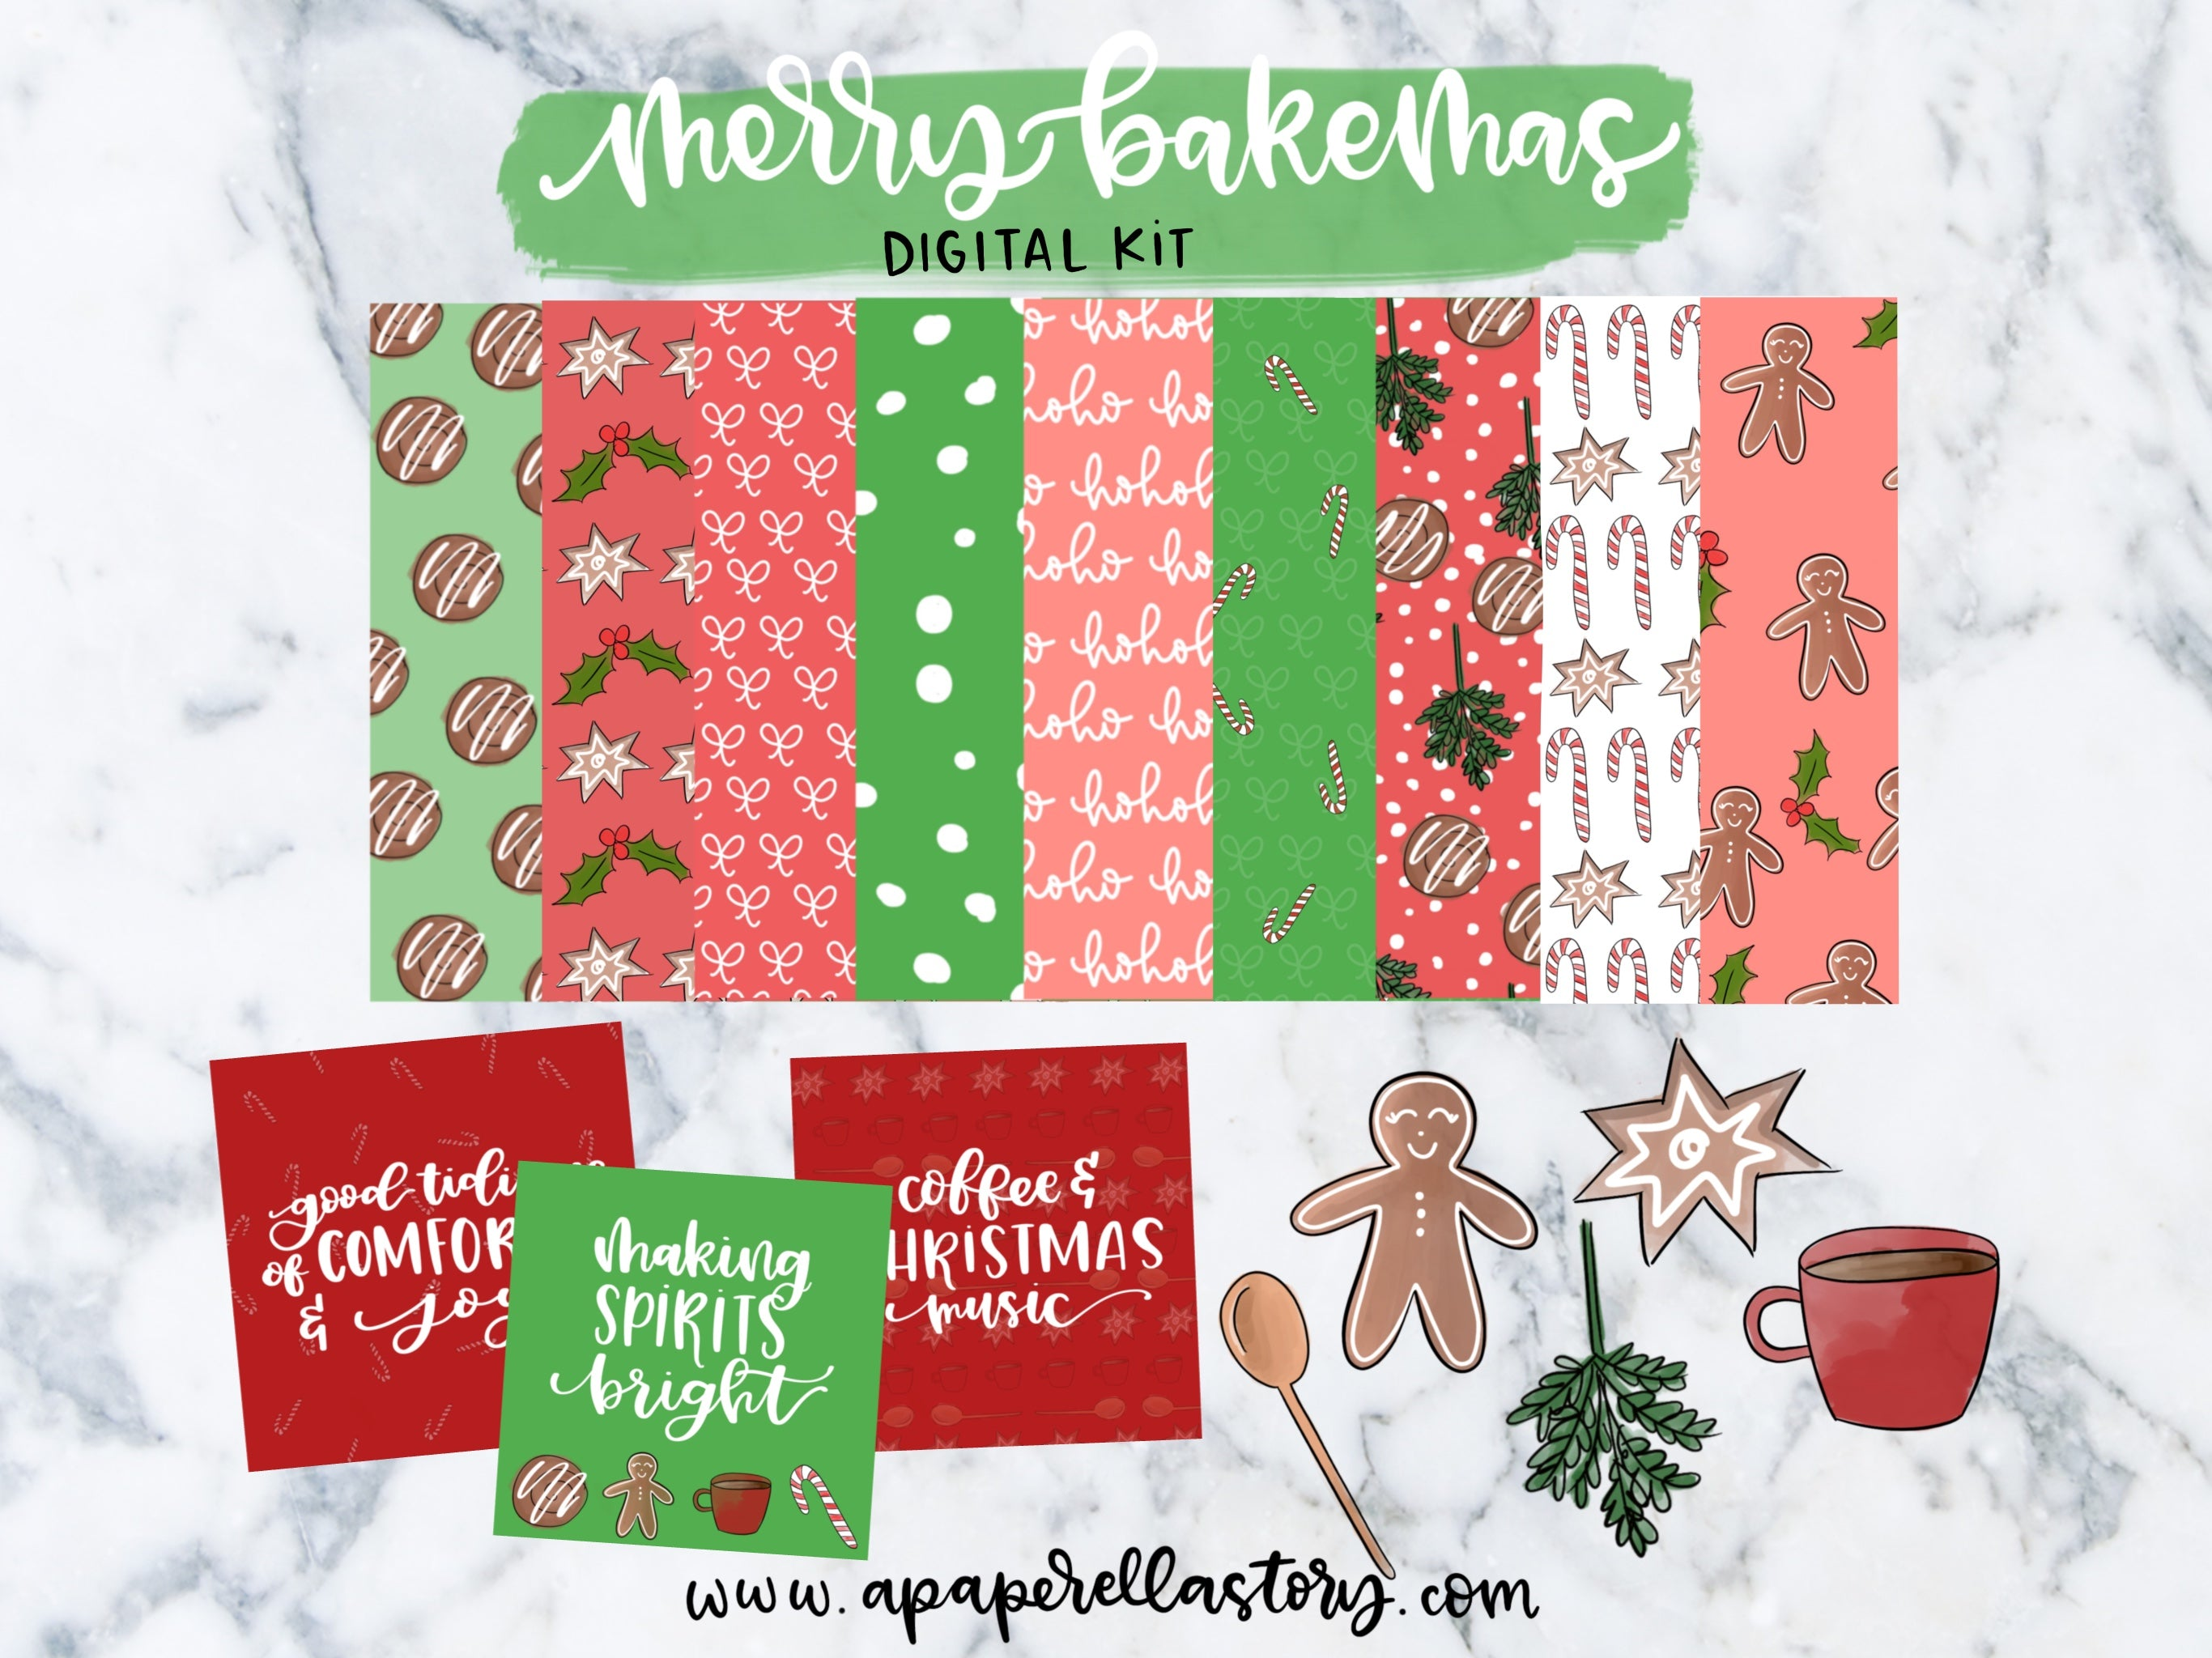 Merry Bakemas - Digital Kit